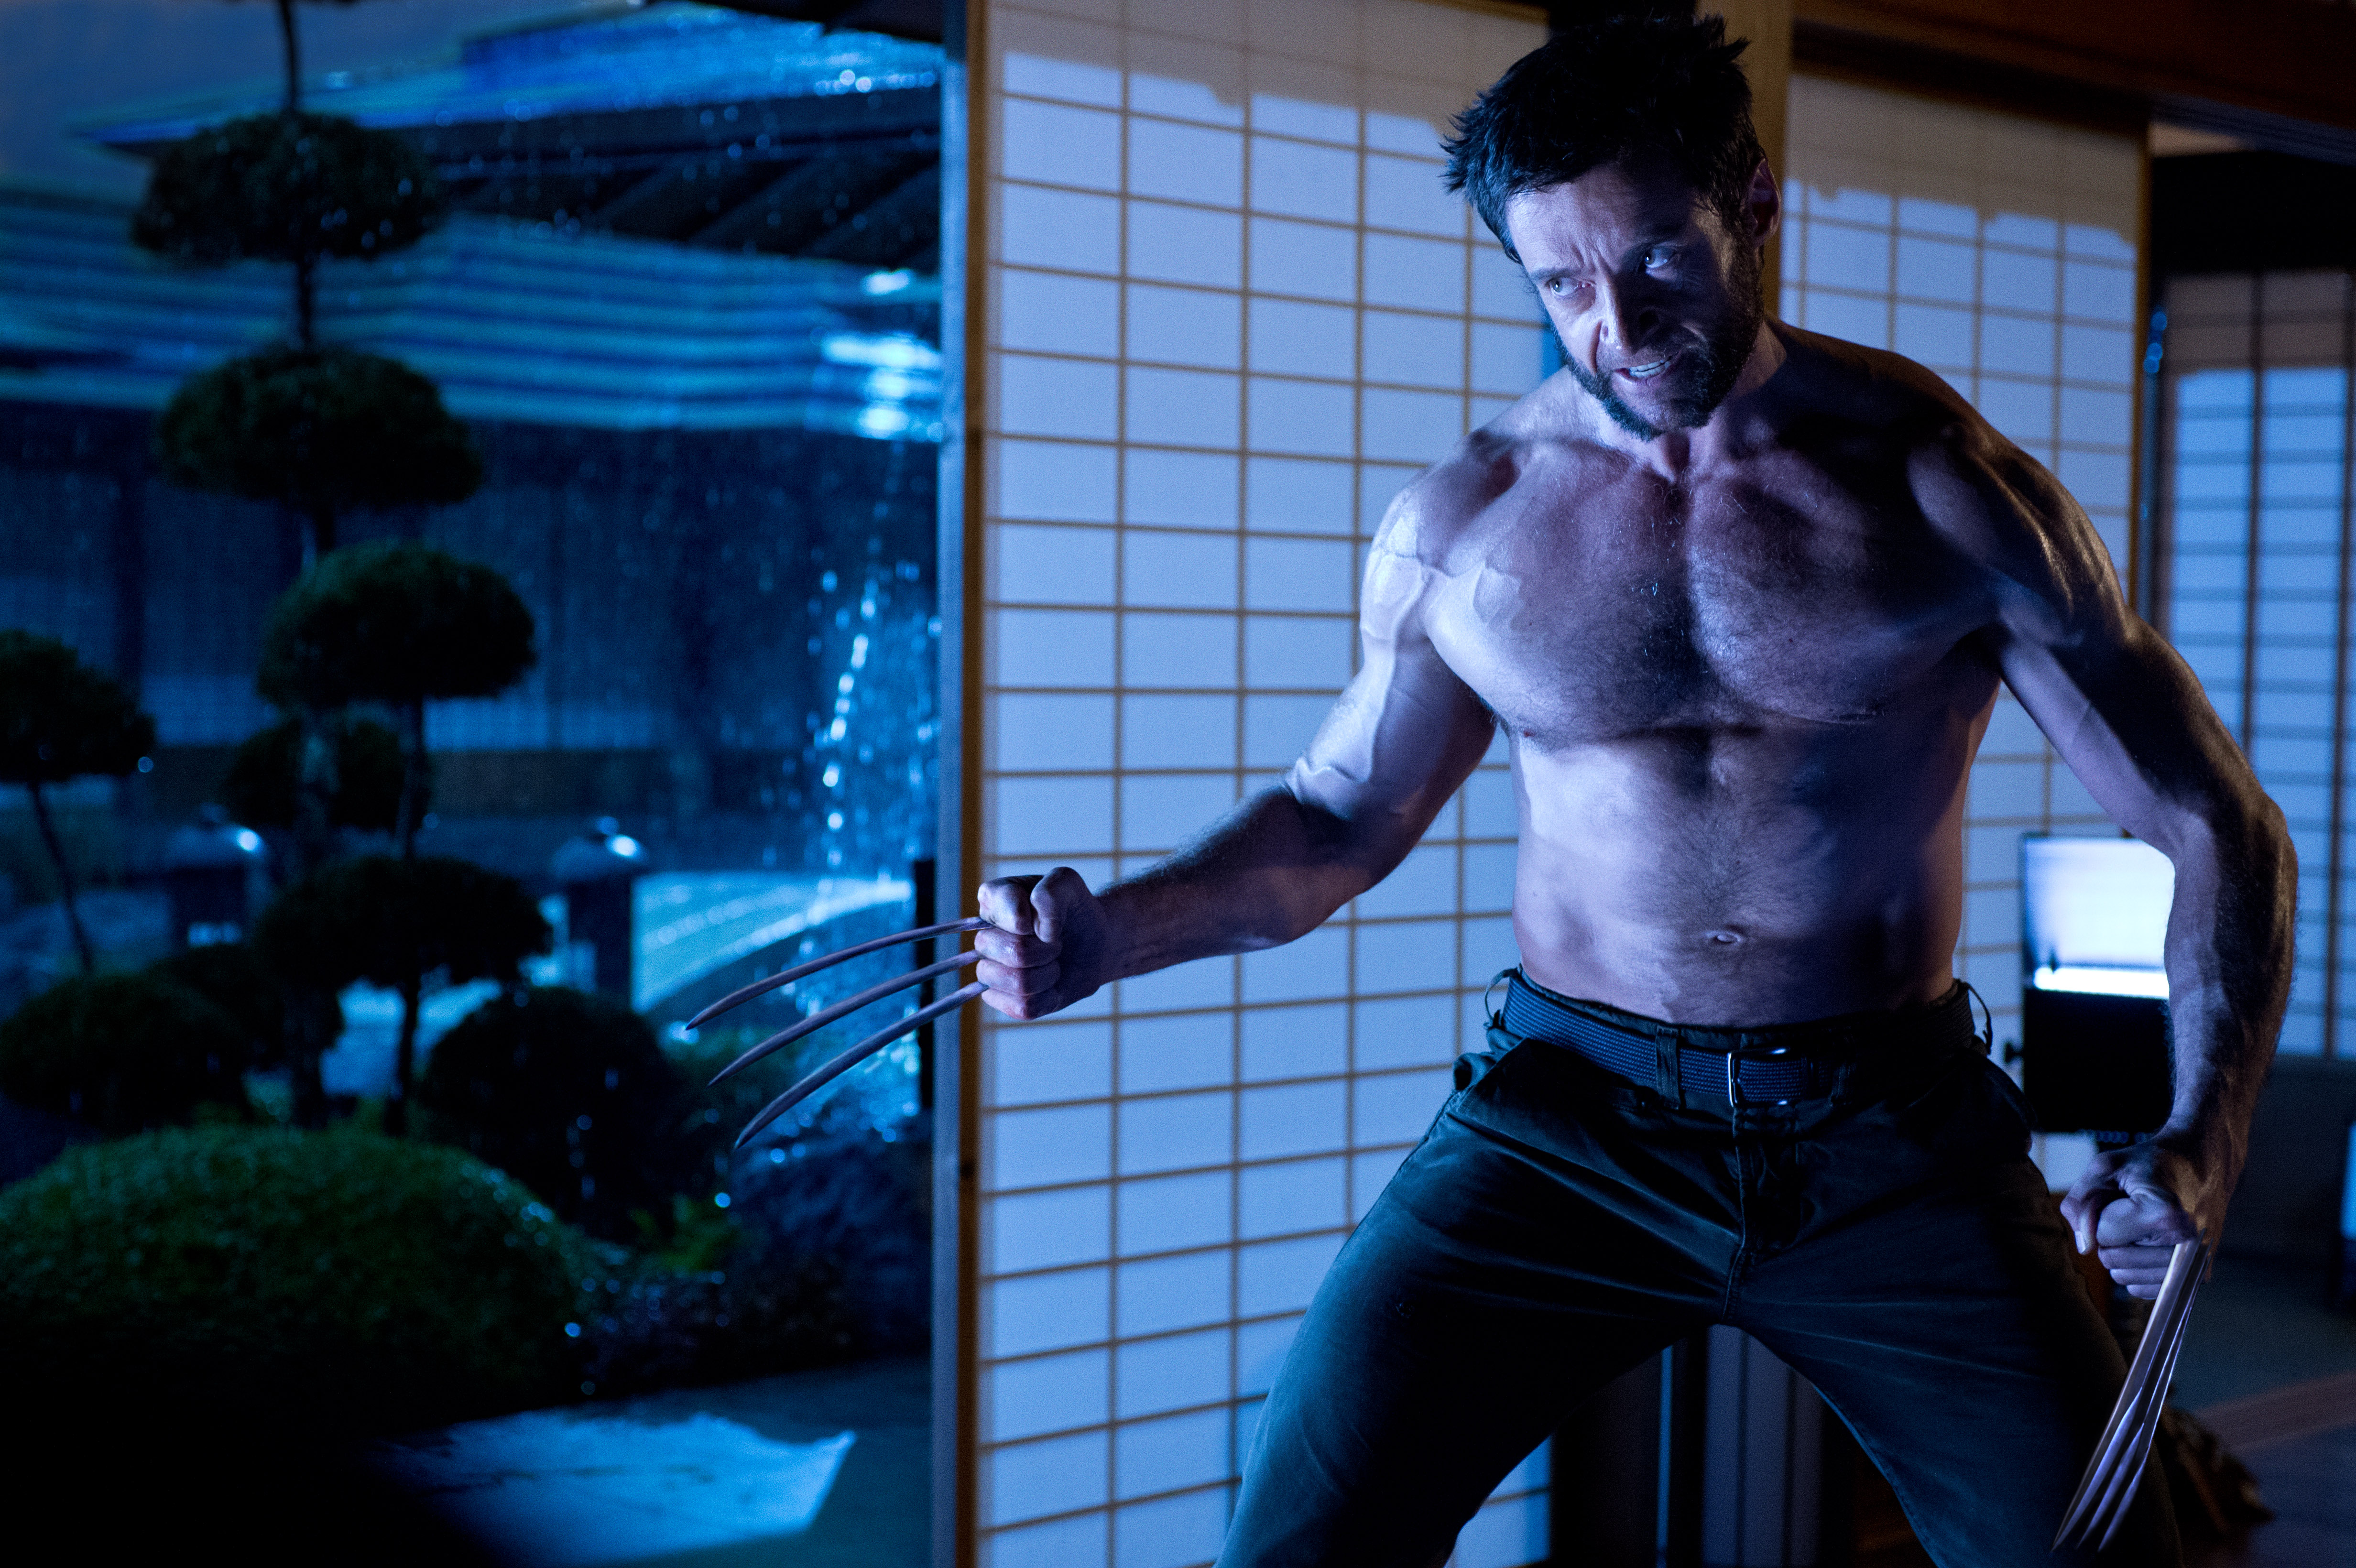 Hugh-Jackman-in-The-Wolverine